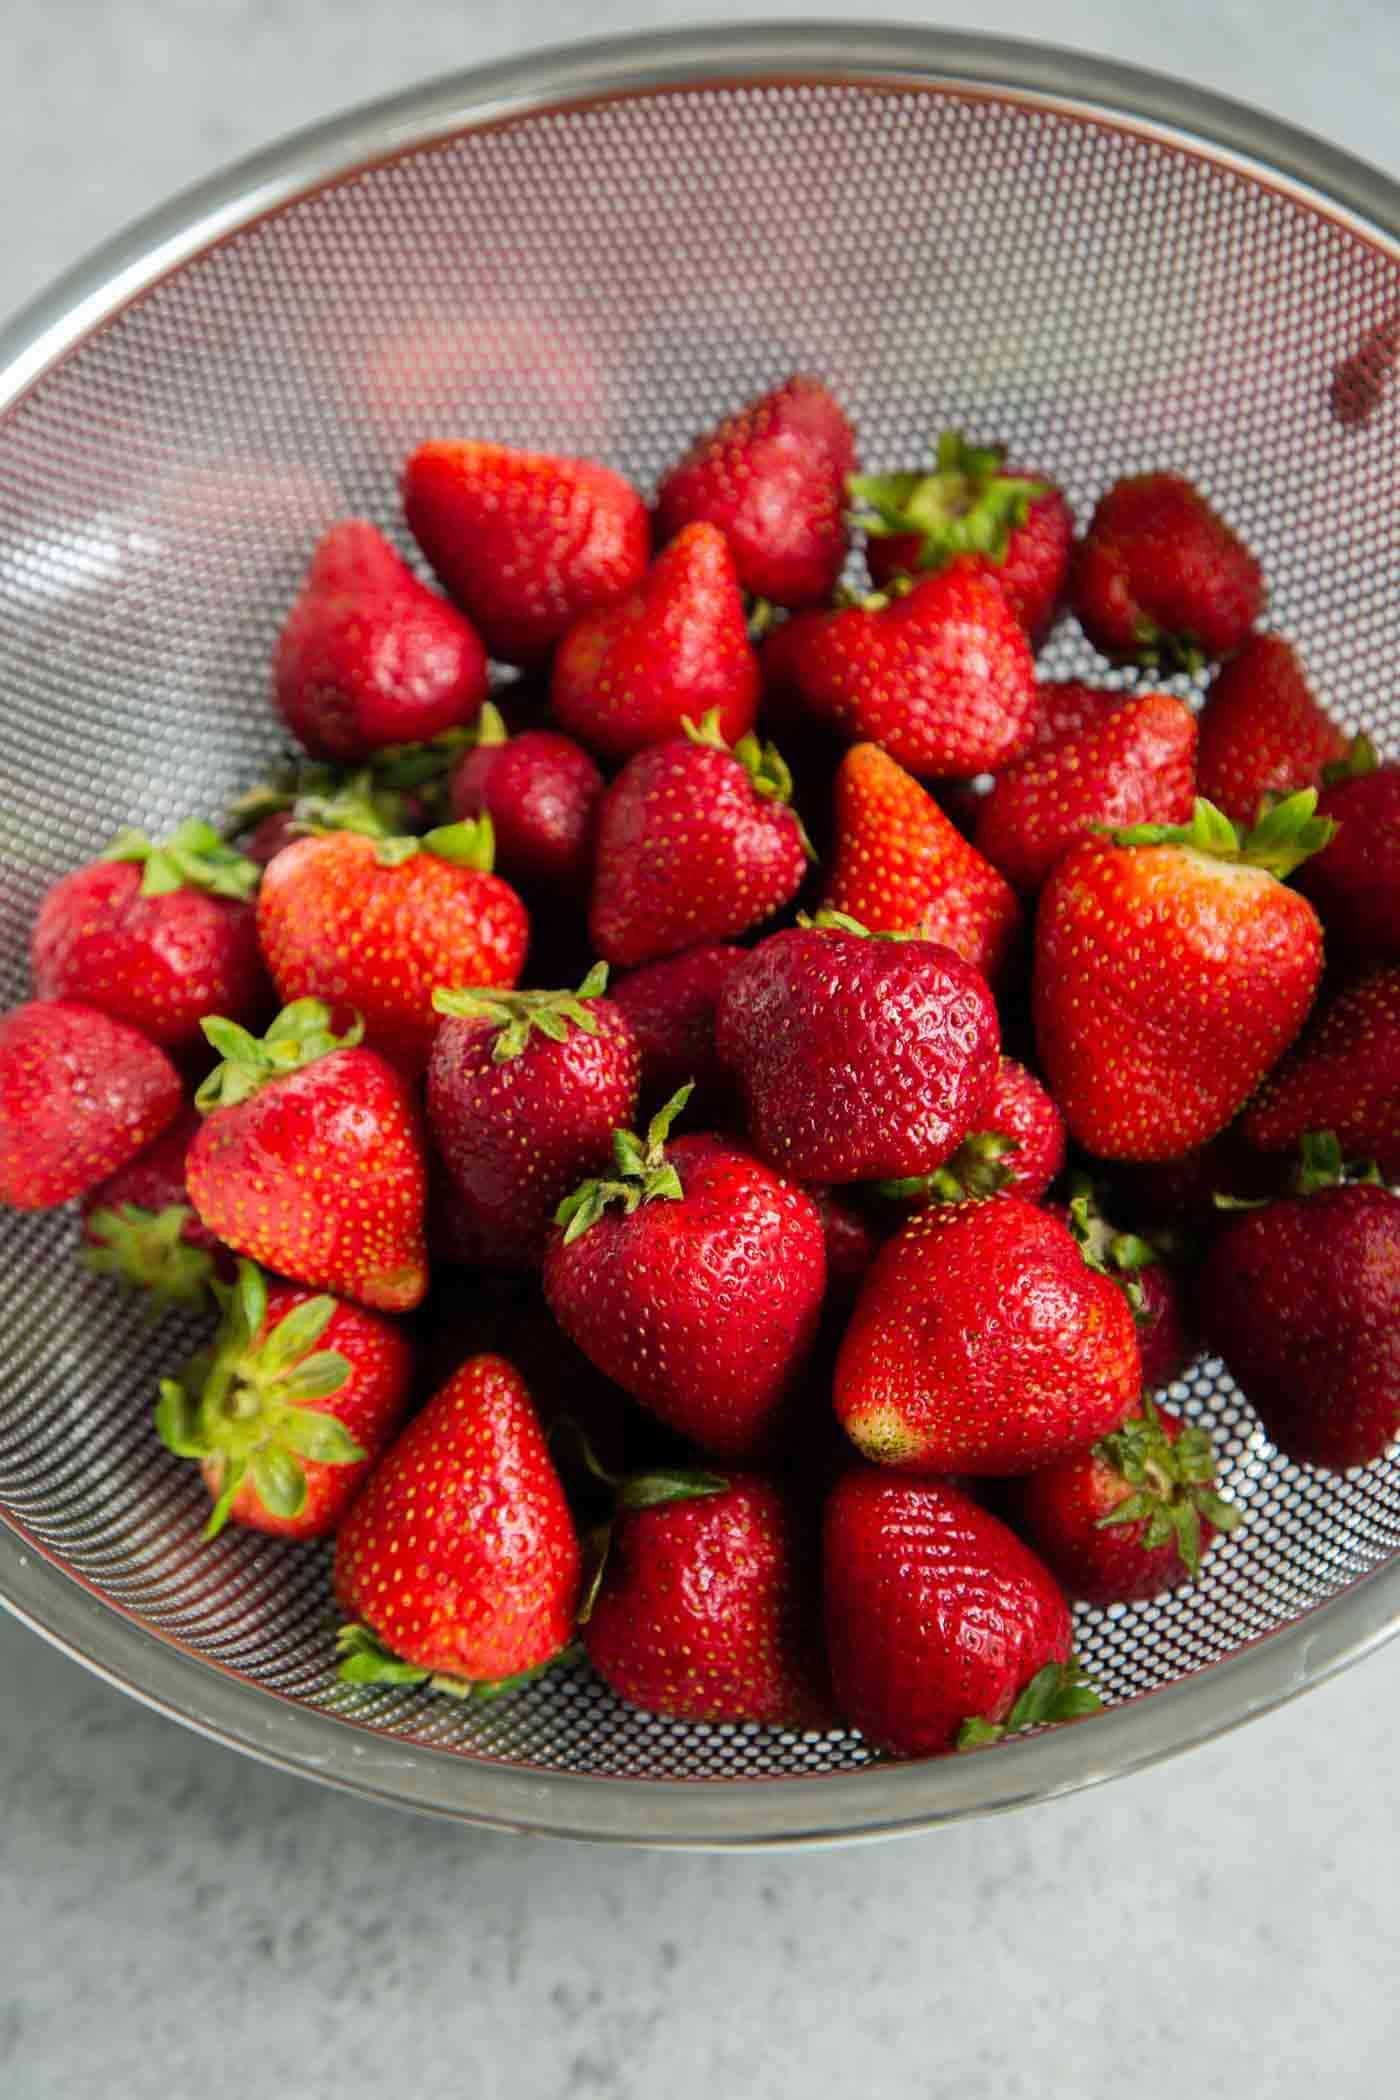 Clean strawberries before freezing